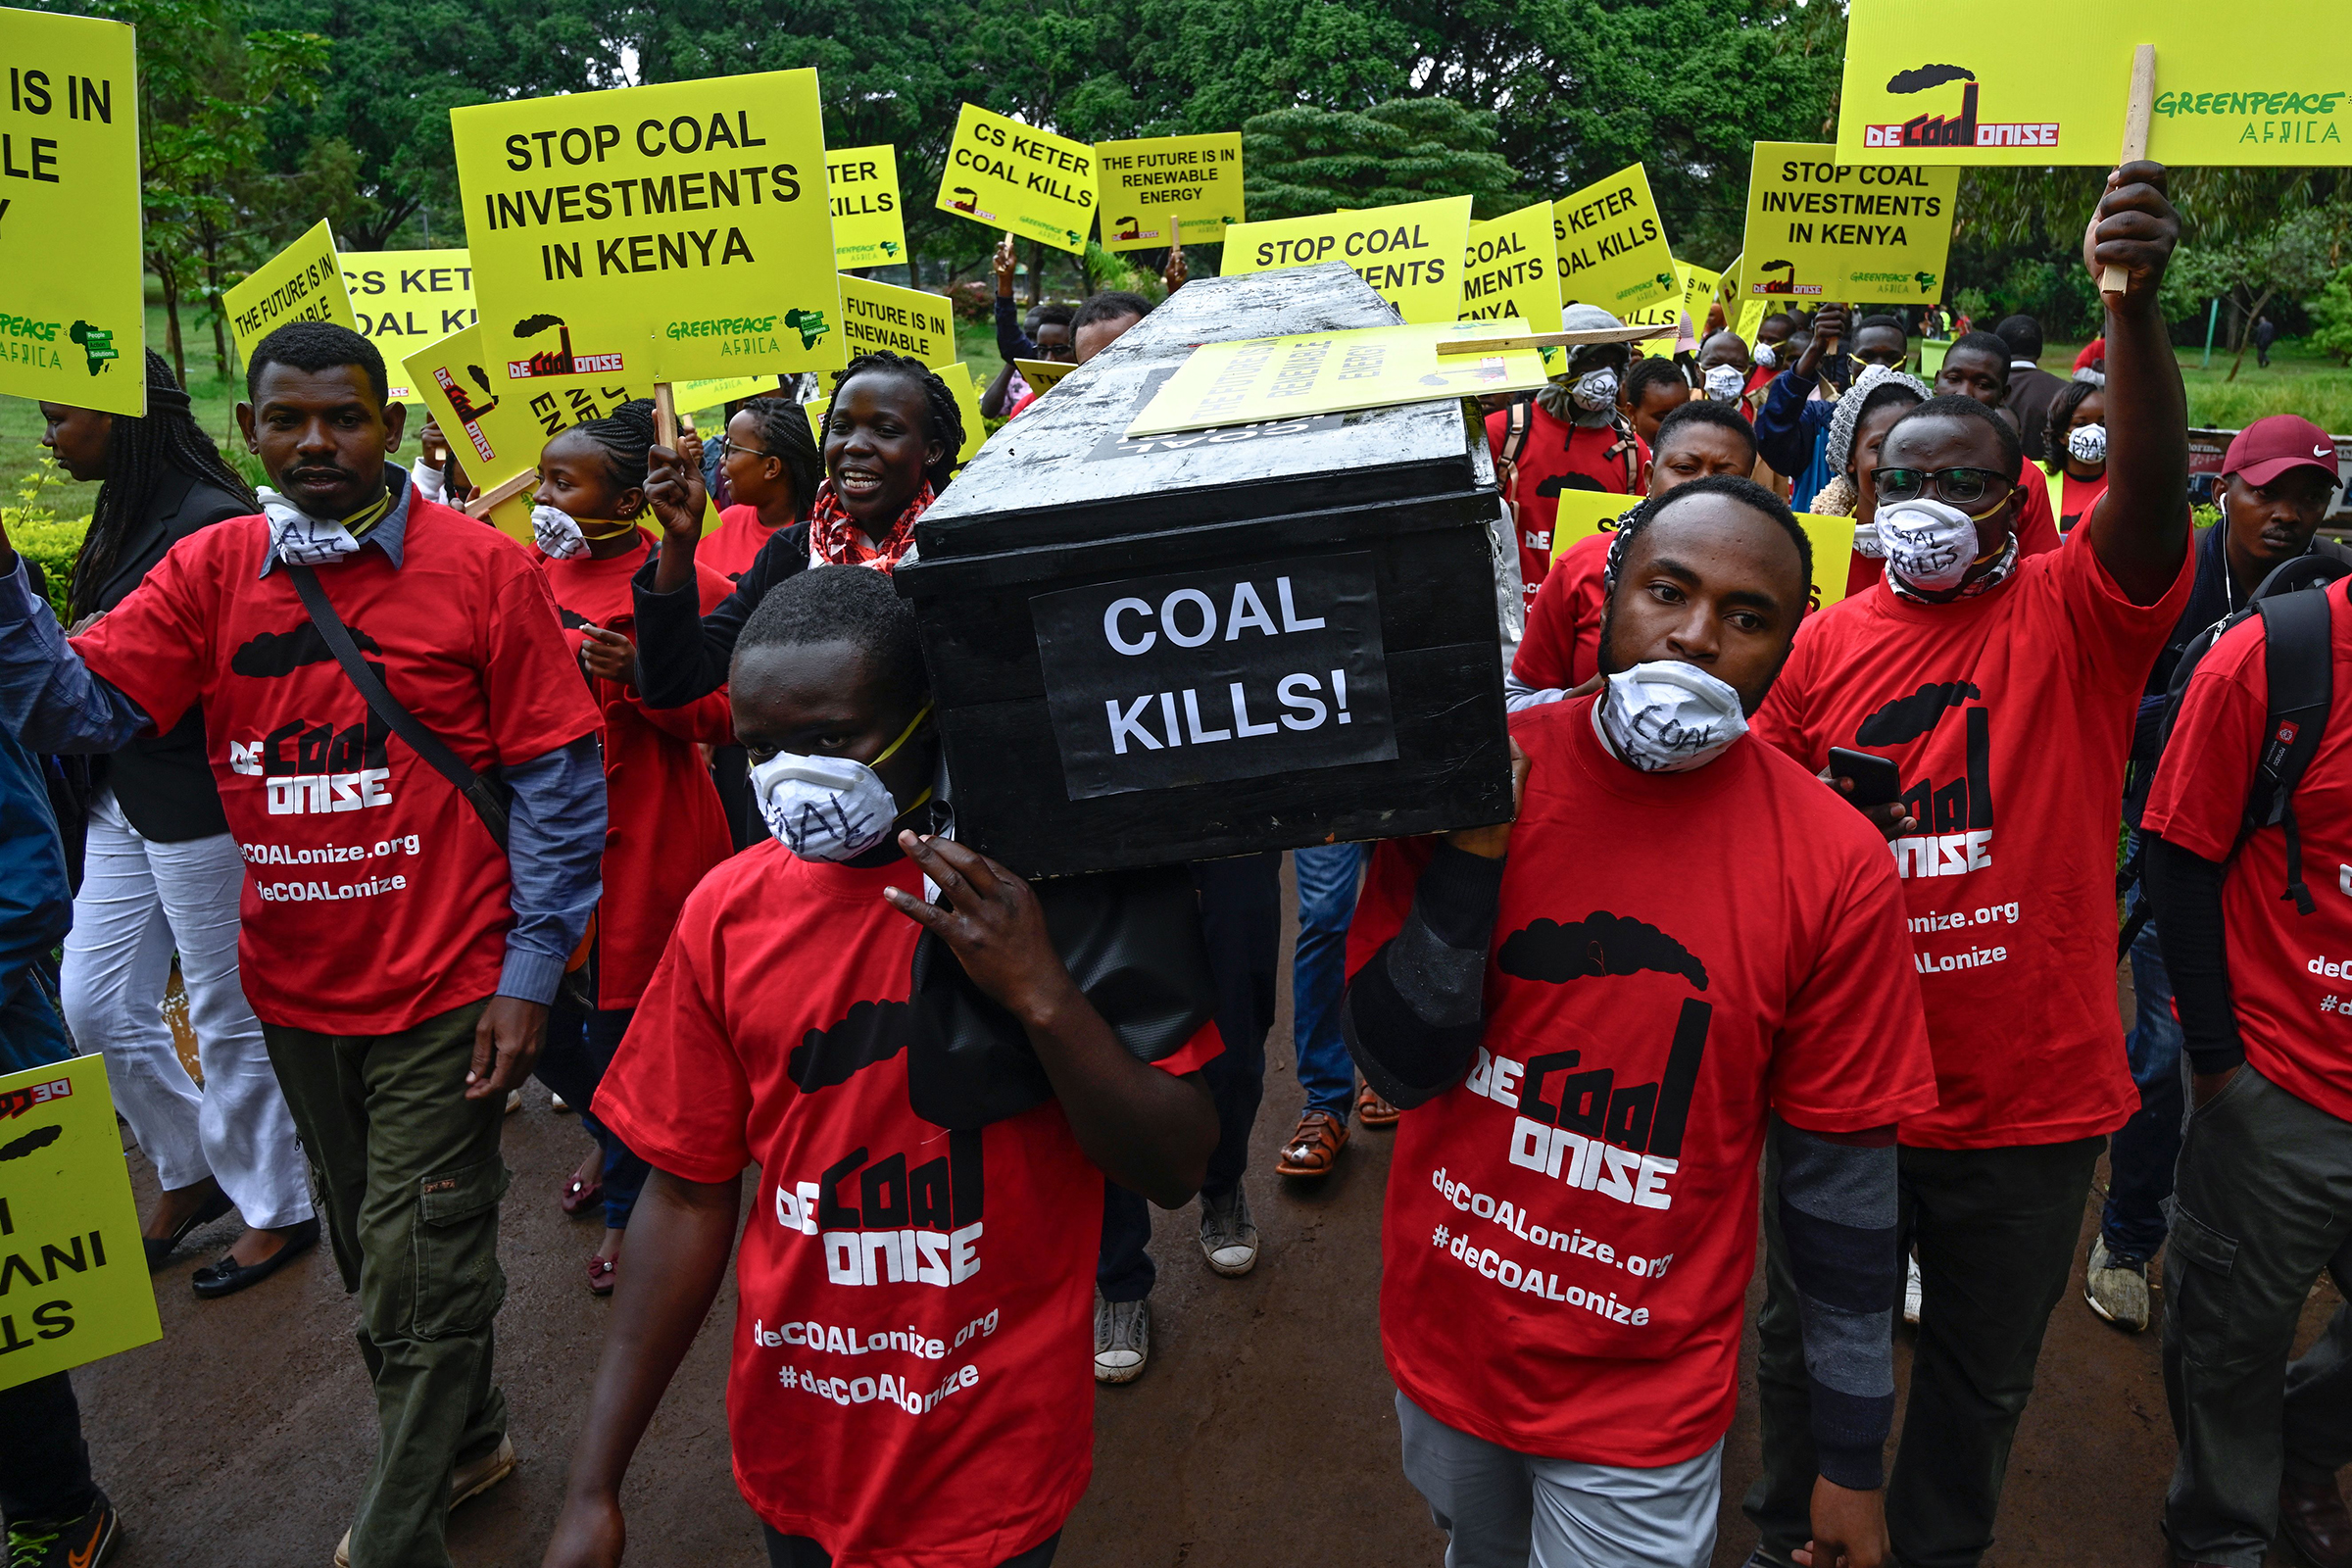 Environmental activists hold a coffin reading  coal kills  as they demonstrate in Nairobi against the construction of a coal power plant in Lamu on Kenya's coast, on June 12, 2019.